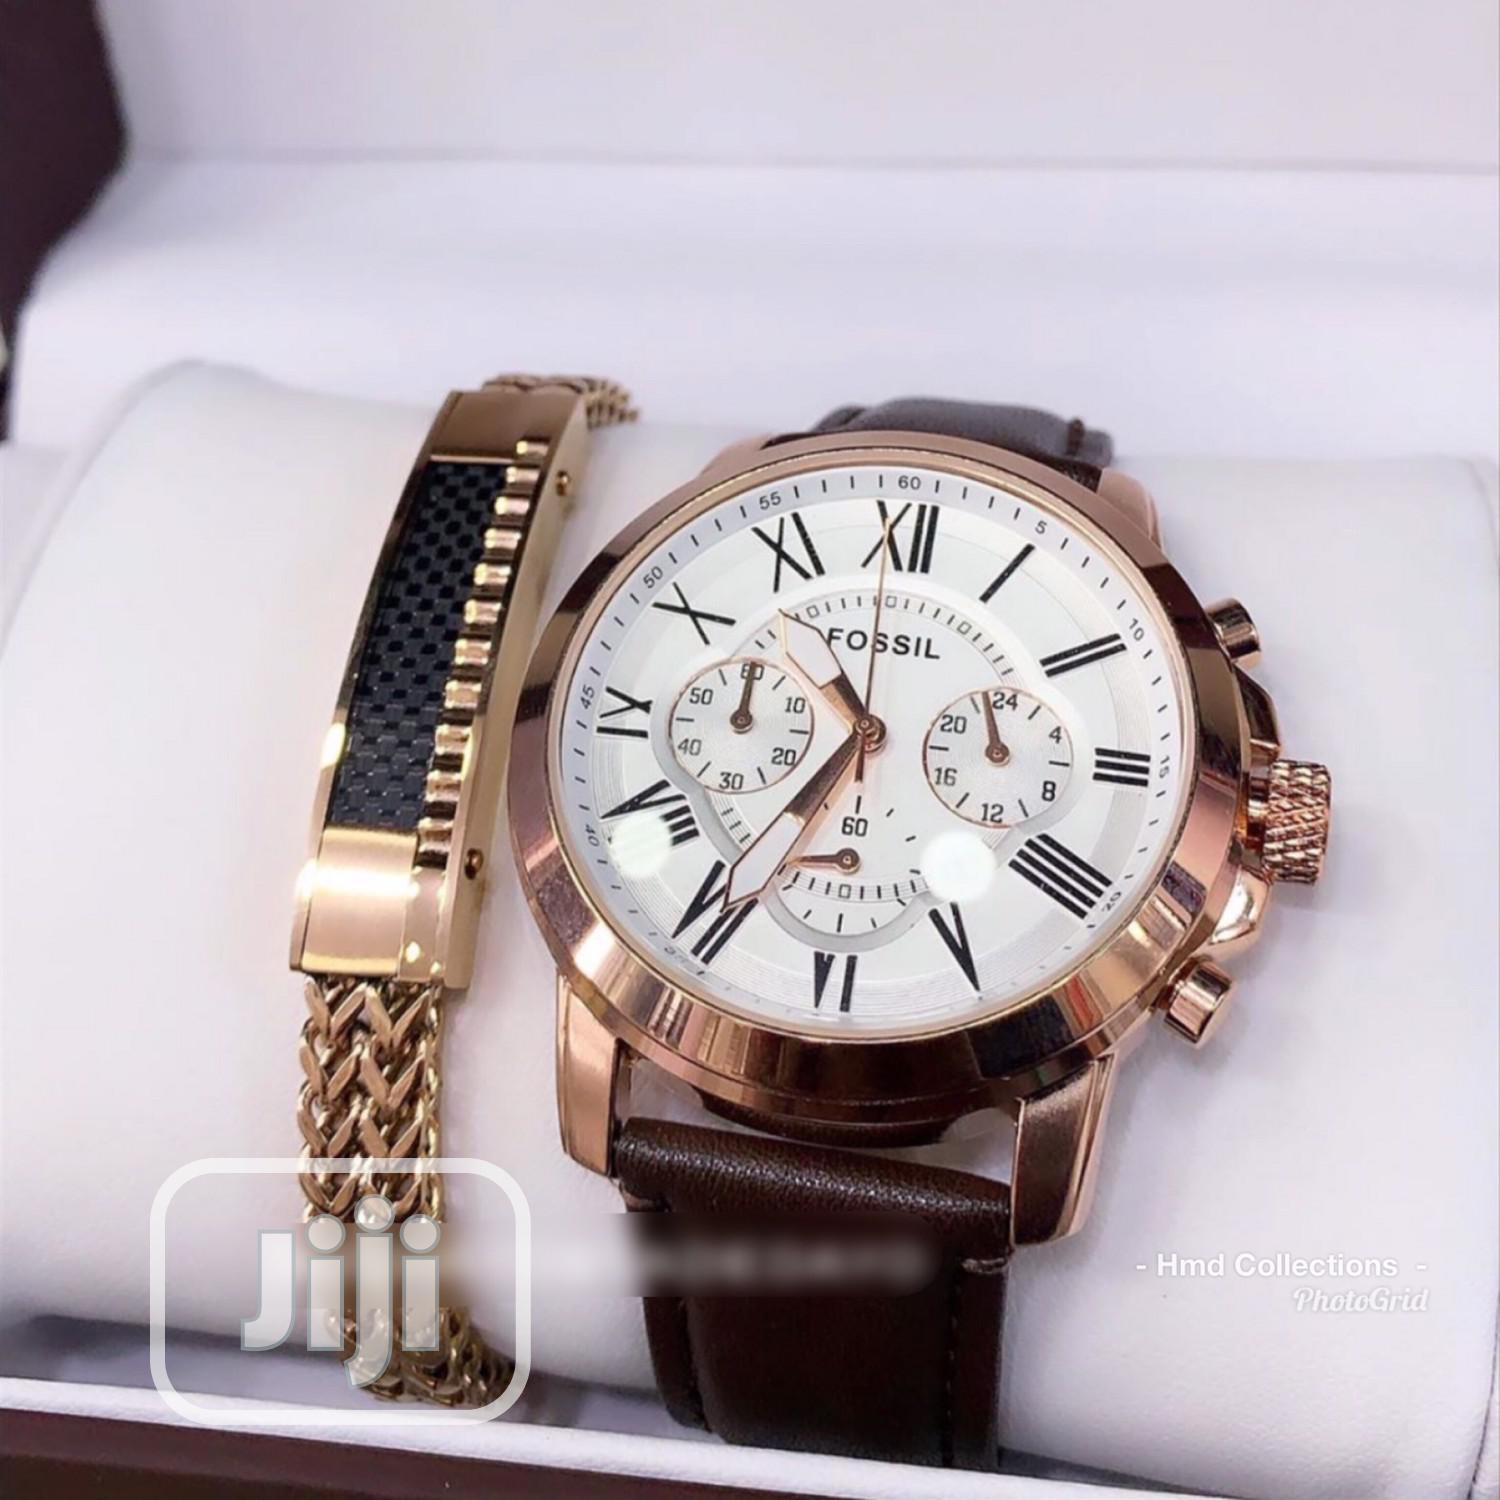 Classic Chronograph Working Fossil Wristwatch